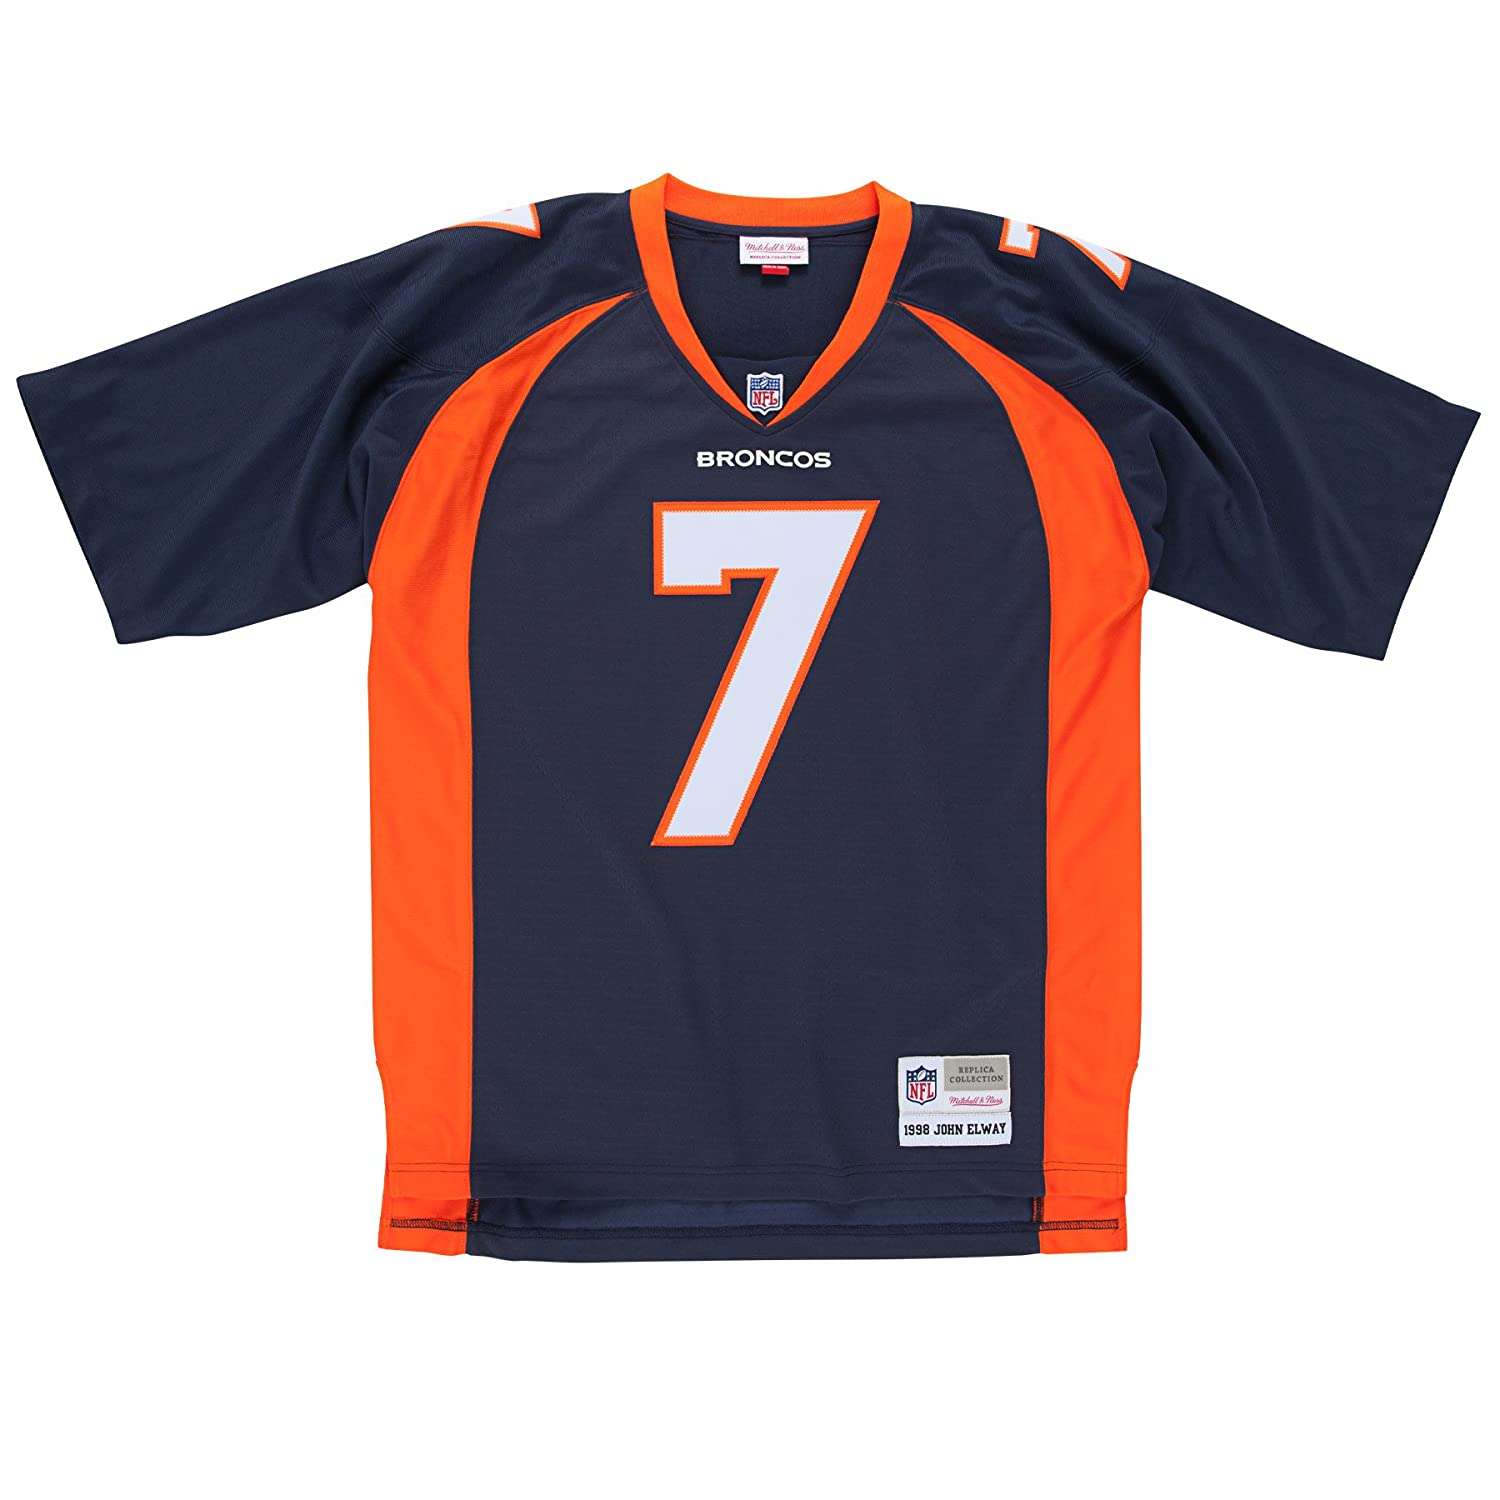 low priced 9c3d3 4d17d 7 john elway jersey drive